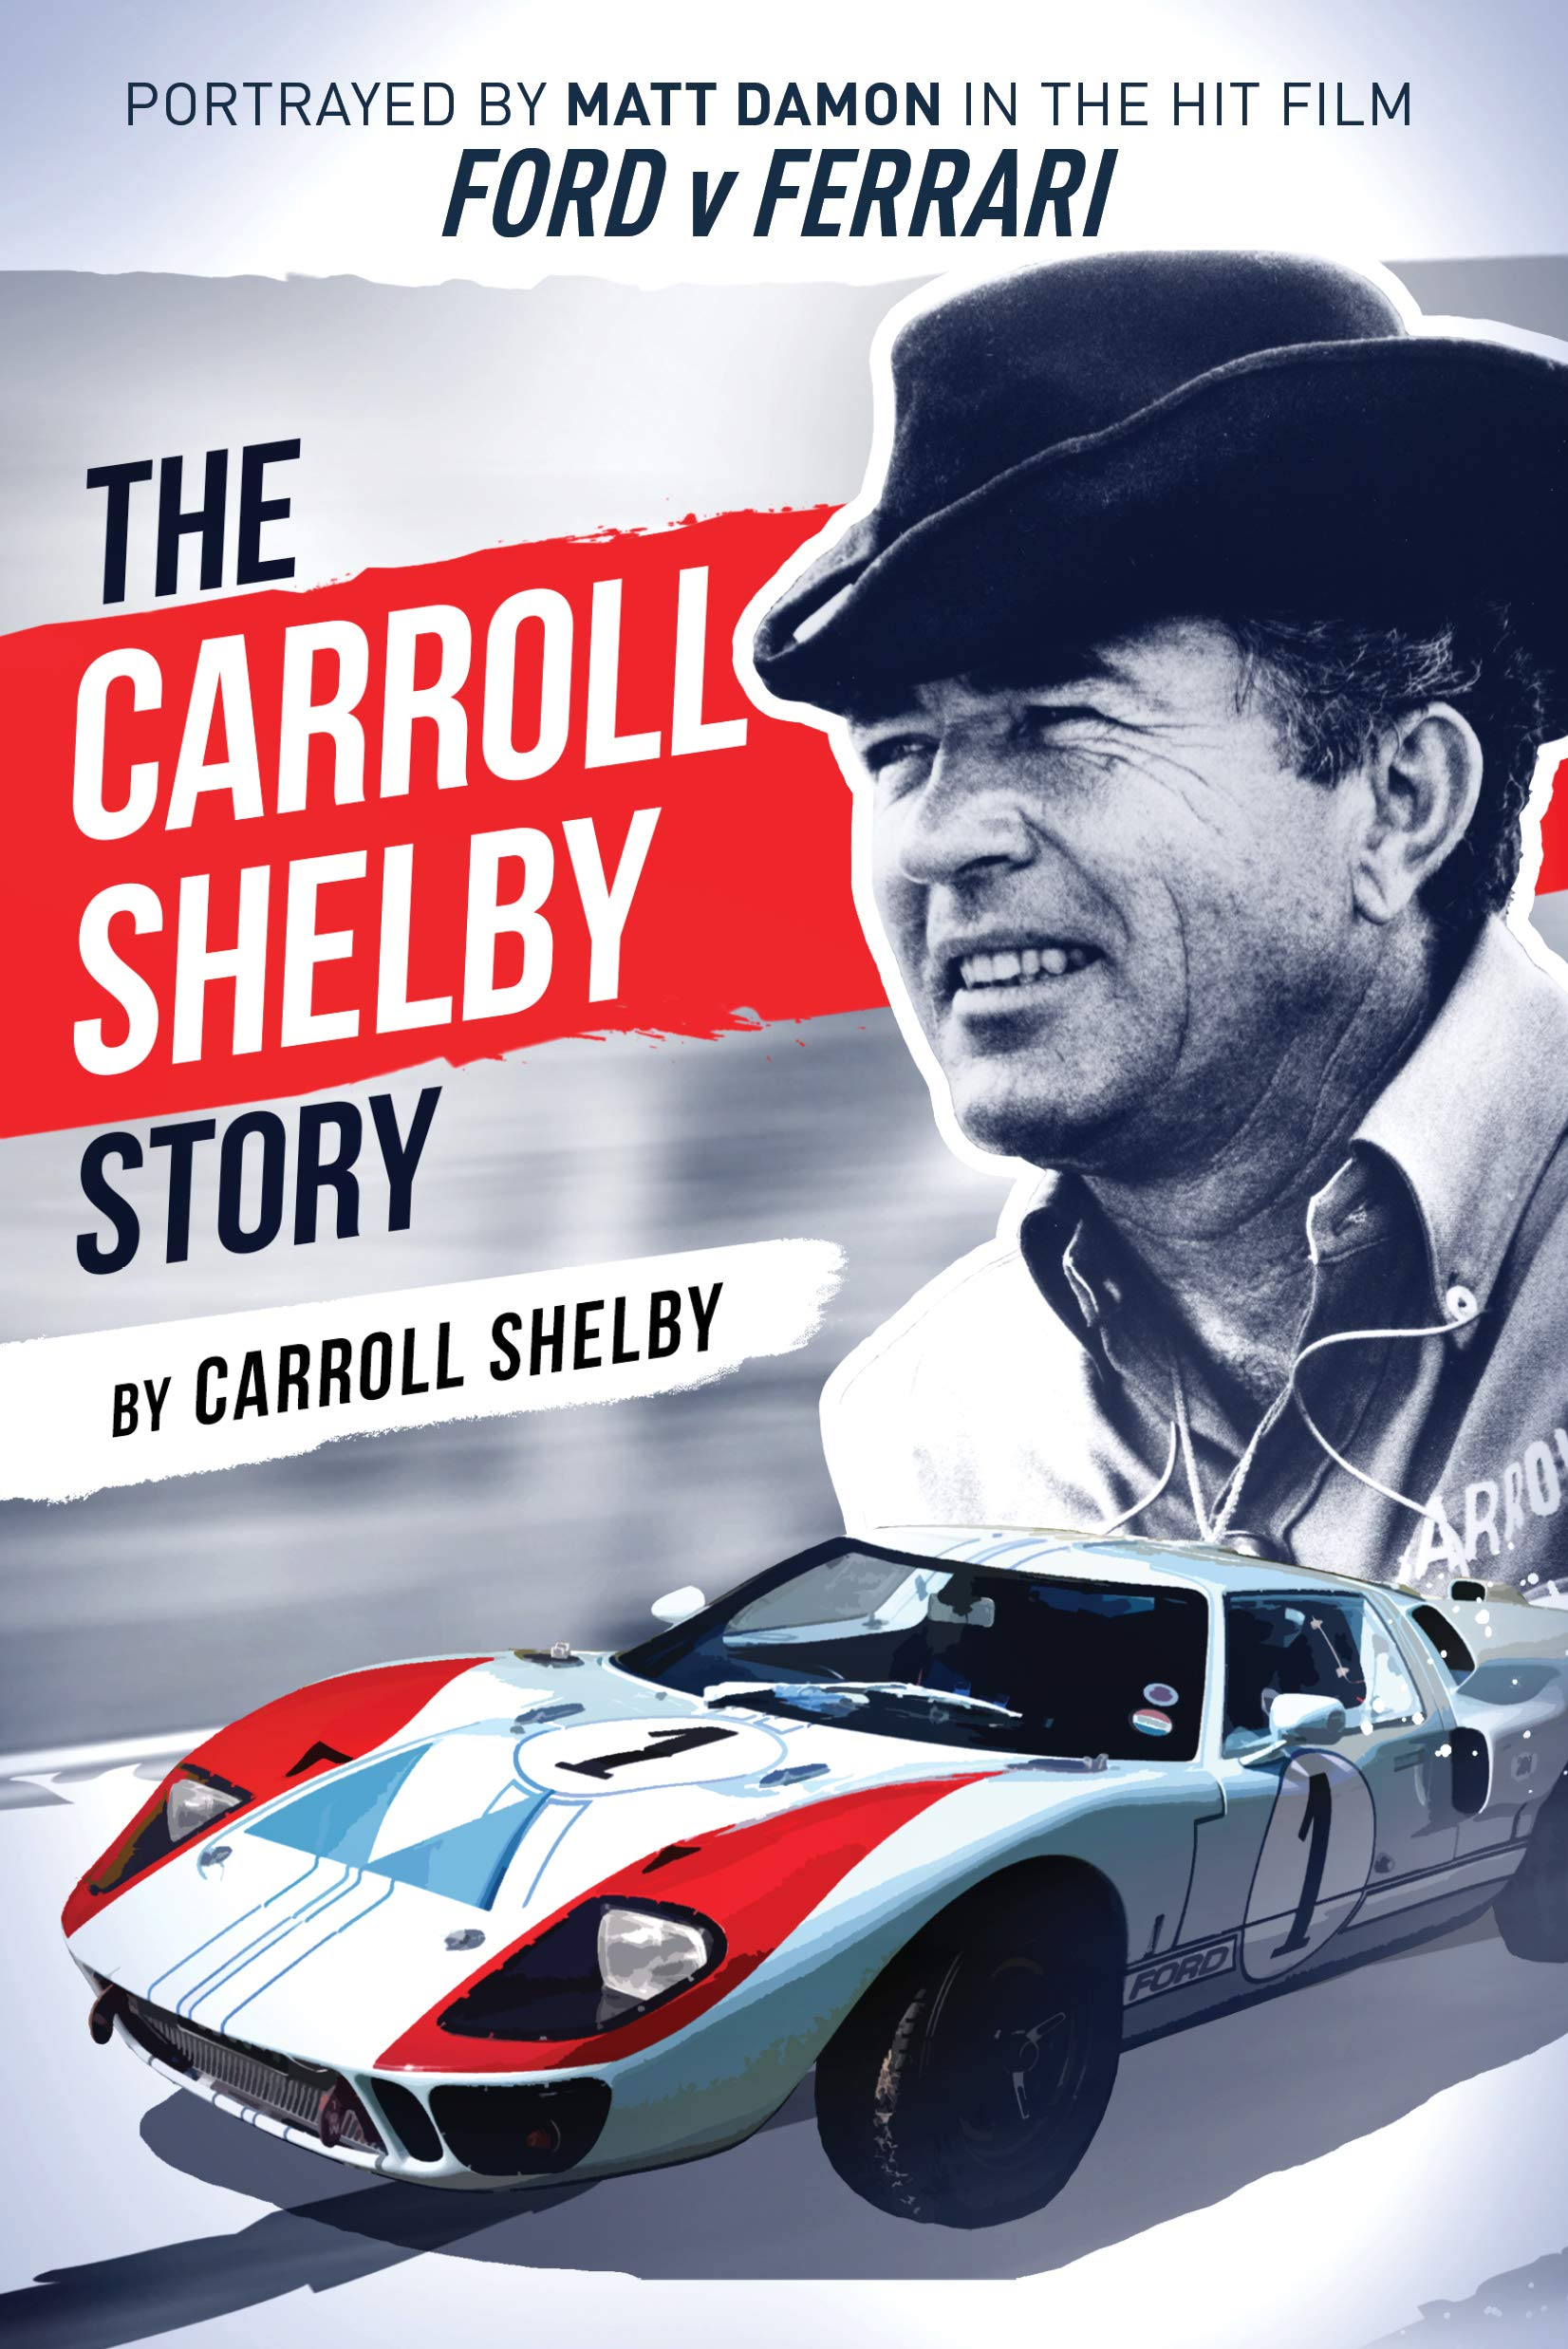 Image OfThe Carroll Shelby Story: Portrayed By Matt Damon In The Hit Film Ford V Ferrari (English Edition)